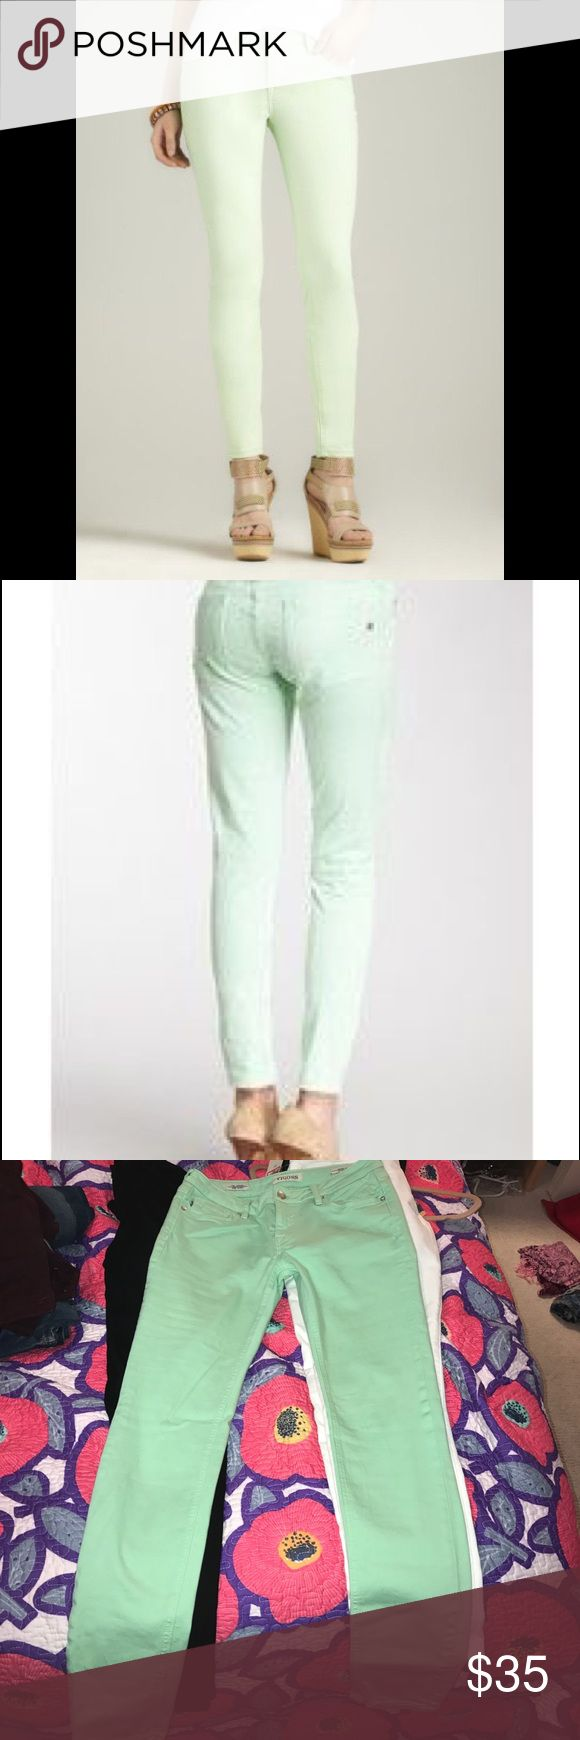 VIGOSS The Jagger Super Skinny Jenas, Size 27 Super comfy! Gently used. From Nordstrom. Worn less than 5 times. Mint green color. Waist 27, Length 31. Comes from a smoke-free home :) Small dark spot on left pant leg, but it's very hard to see! Vigoss Jeans Skinny